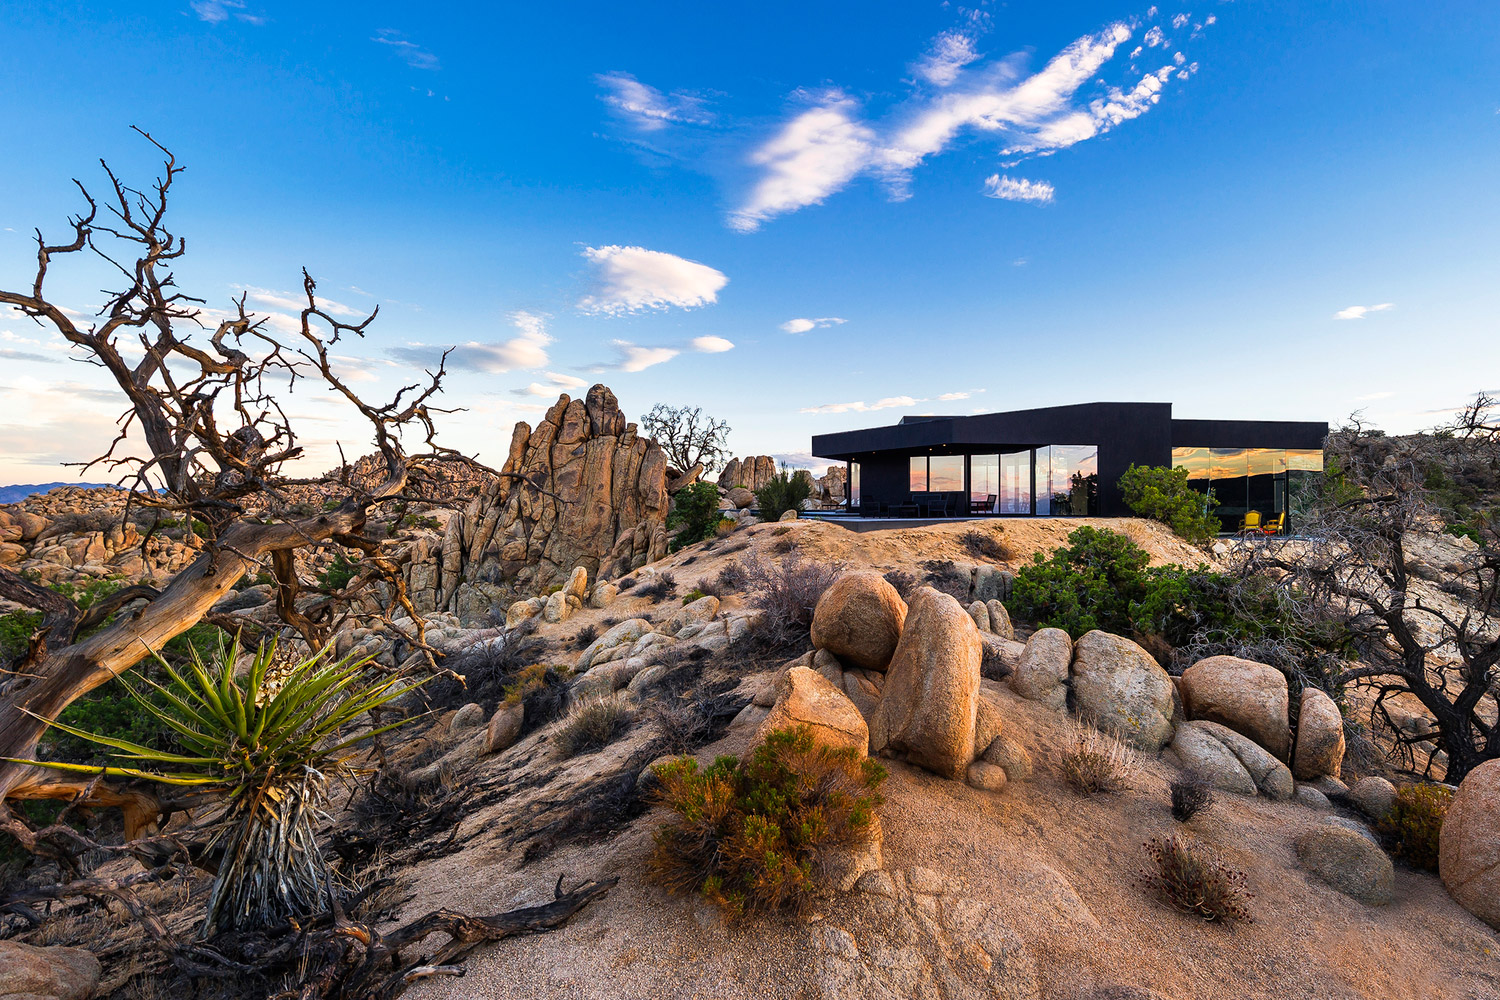 black-desert-house-mojave-01